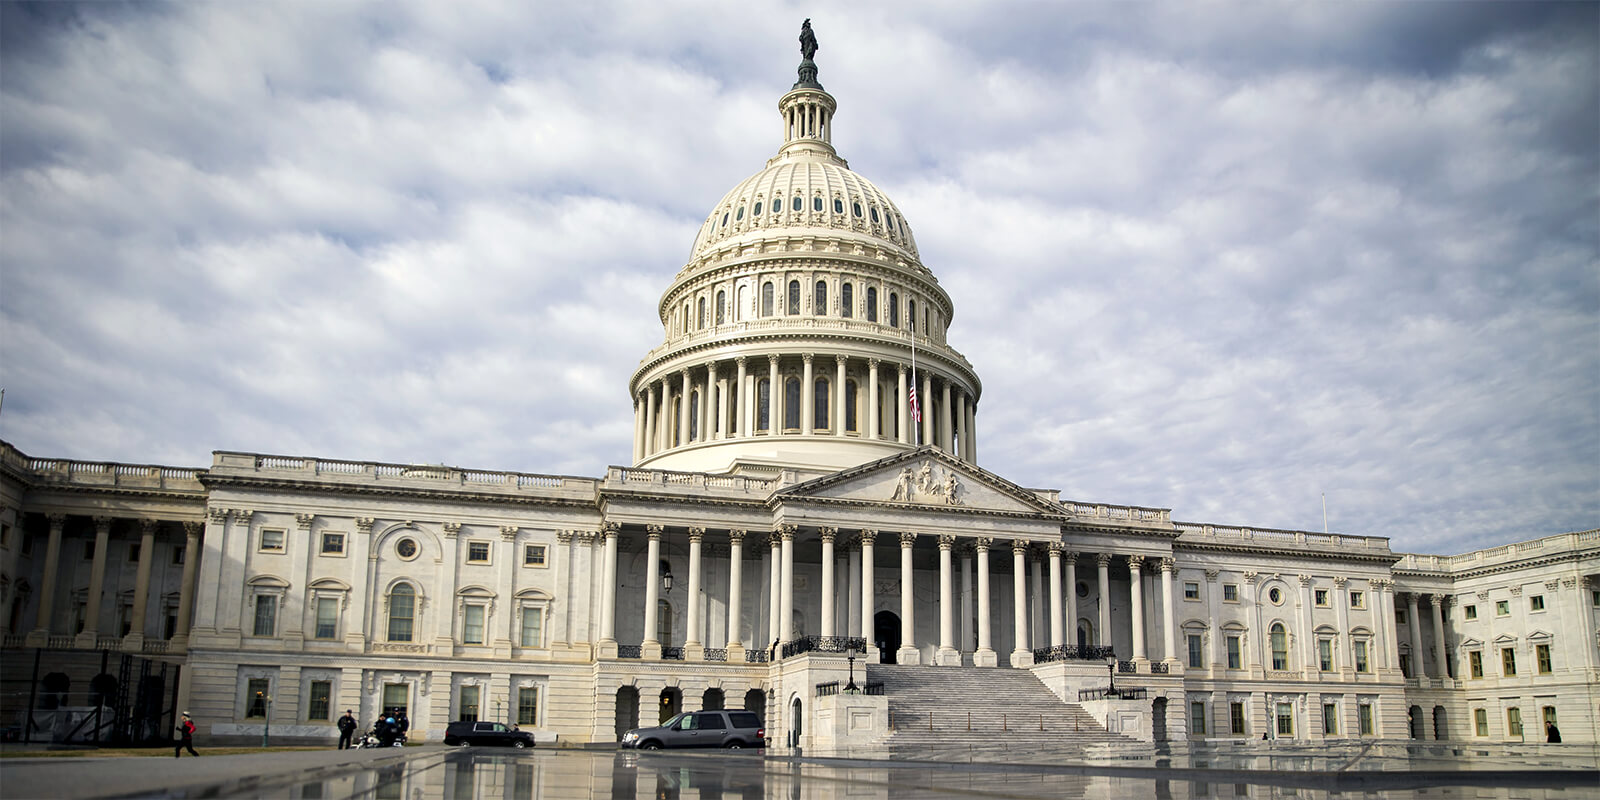 ACE: Senate stimulus marks next step in securing direct aid for biofuels sector, now Congress must see it across the finish line